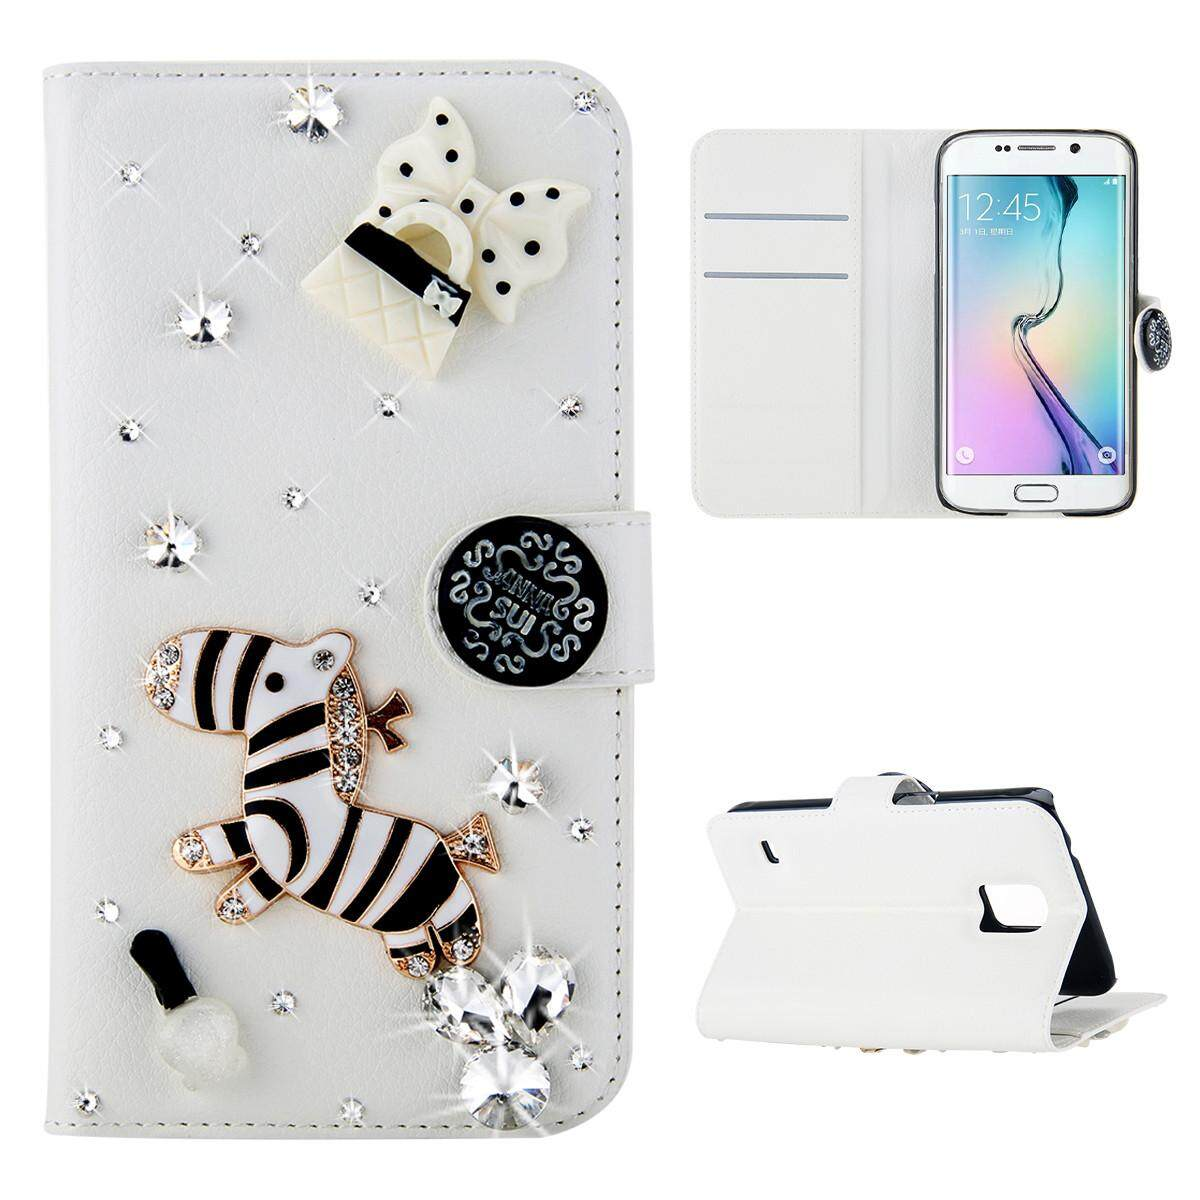 AS beauty Phone Case, For LG X Venture 3D Bling Diamond Rhinestones PU Leather Wallet Case Flip Stand Card Slots Cover with Magnetic Closure - intl